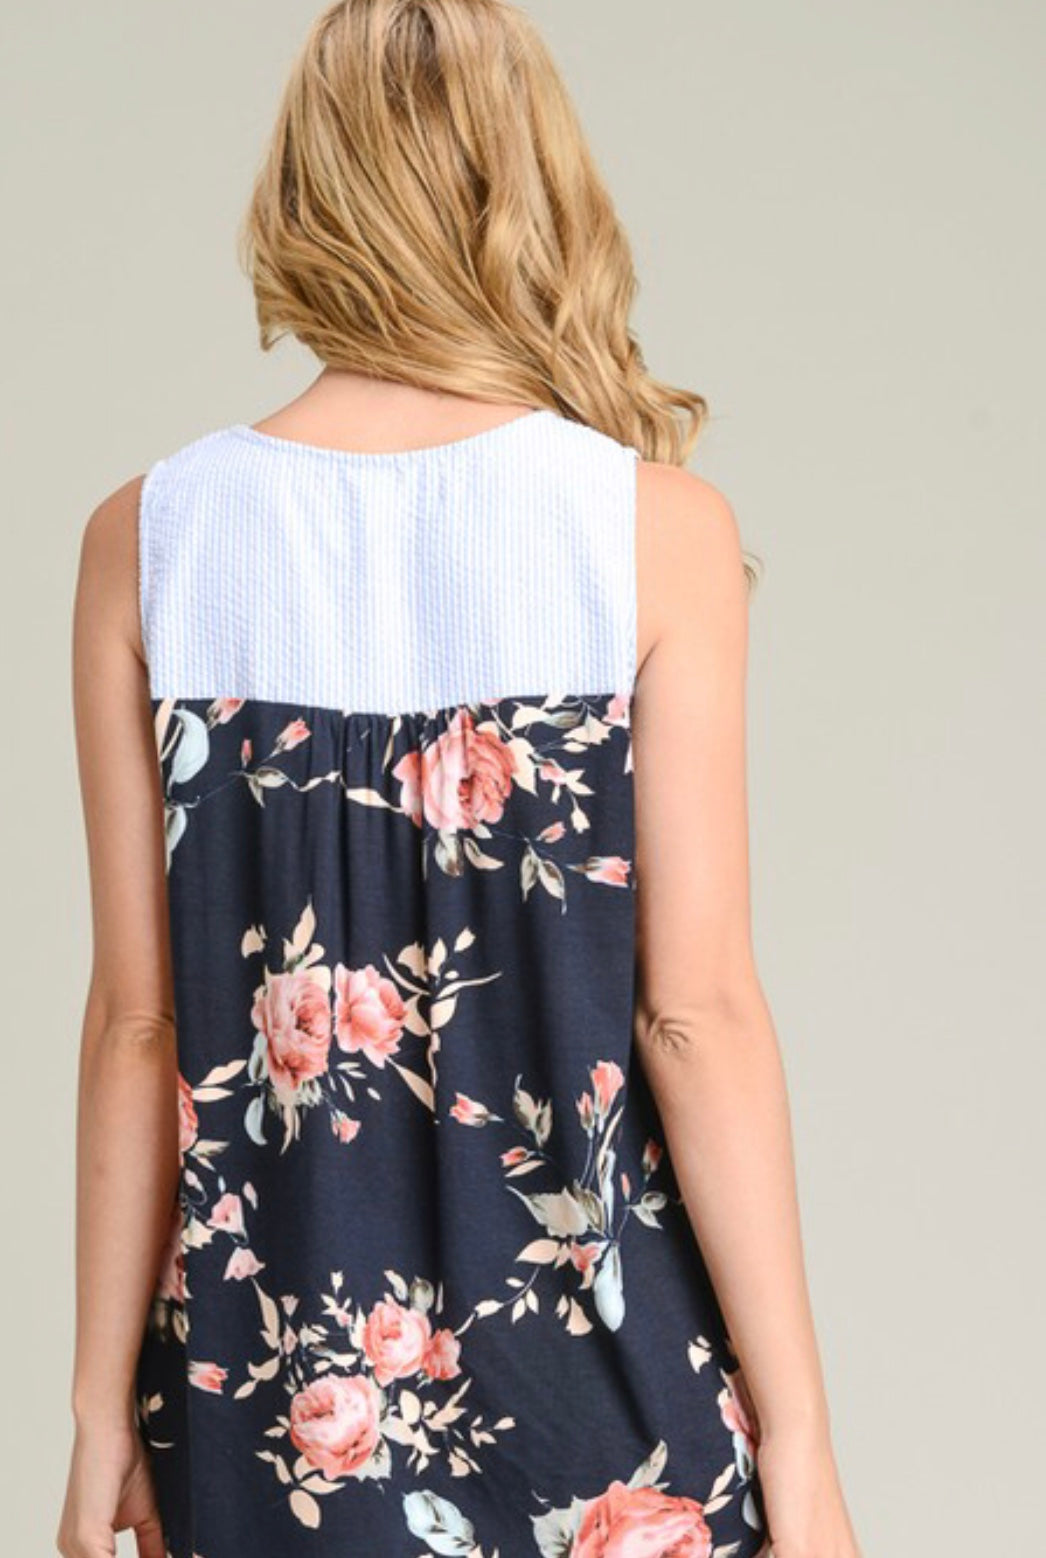 Love at first sight Floral Tank Top - Navy